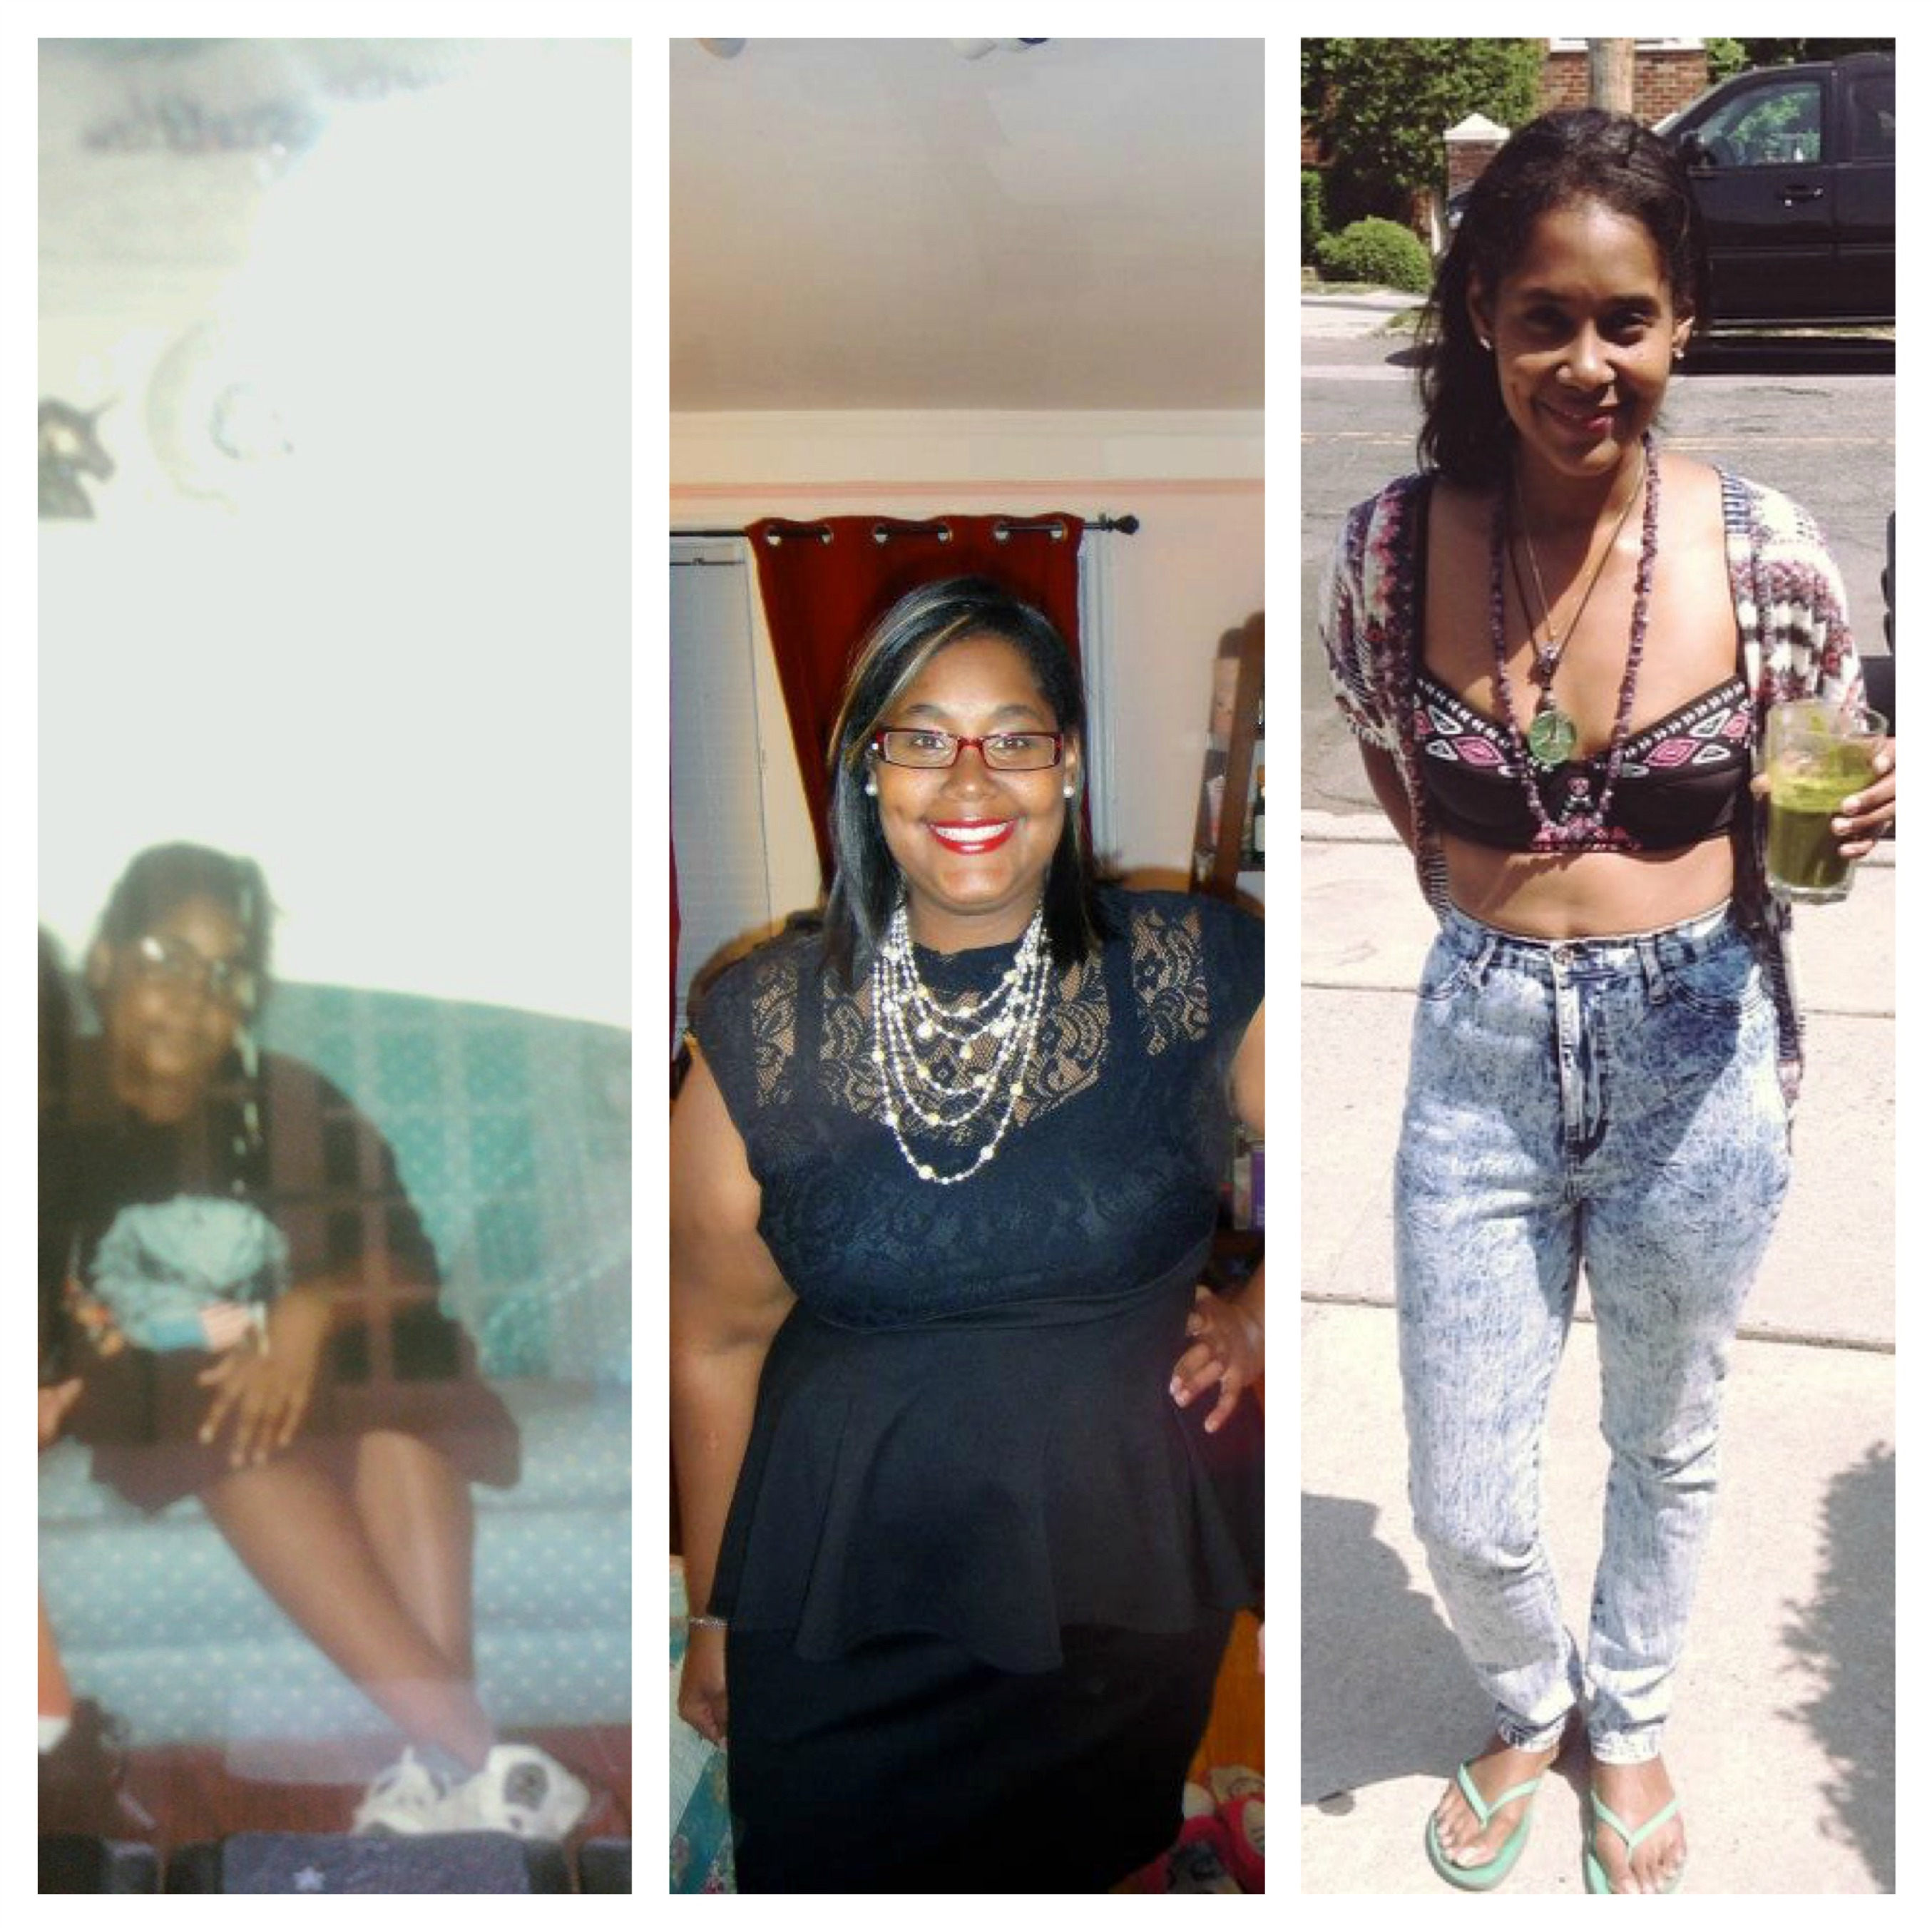 Great success story! Read before and after fitness transformation stories from women and men who hit weight loss goals and got THAT BODY with training and meal prep. Find inspiration, motivation, and workout tips | She Wolves Fight